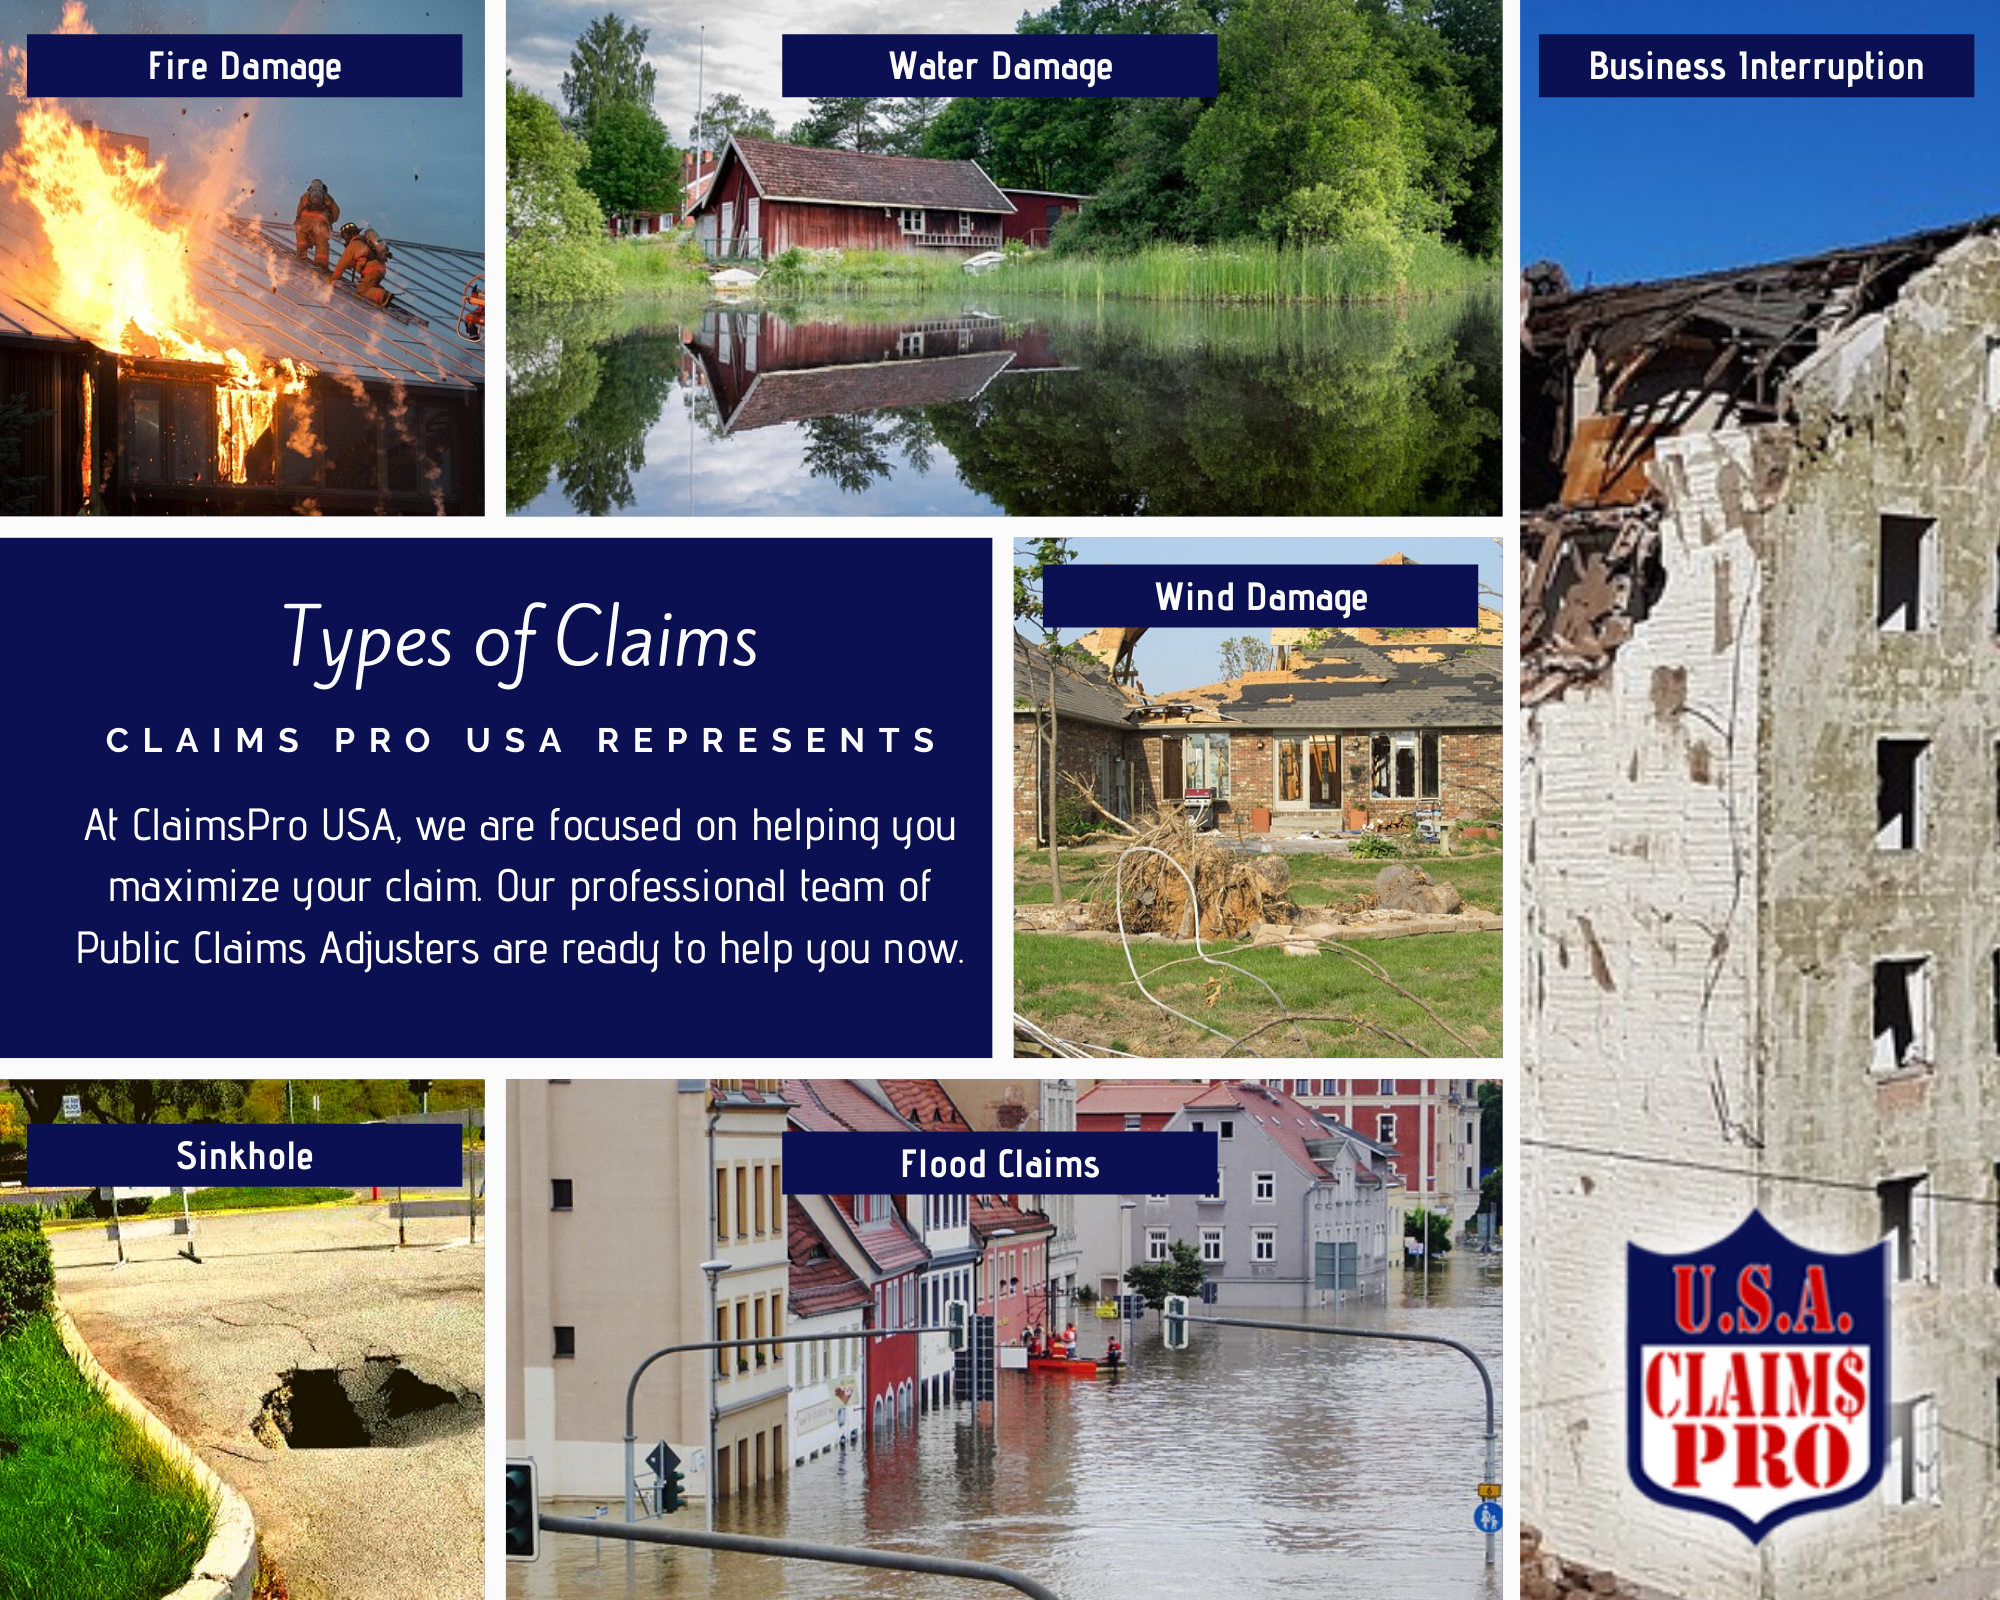 Types of Property Damage Insurance Claims by Claims Pro